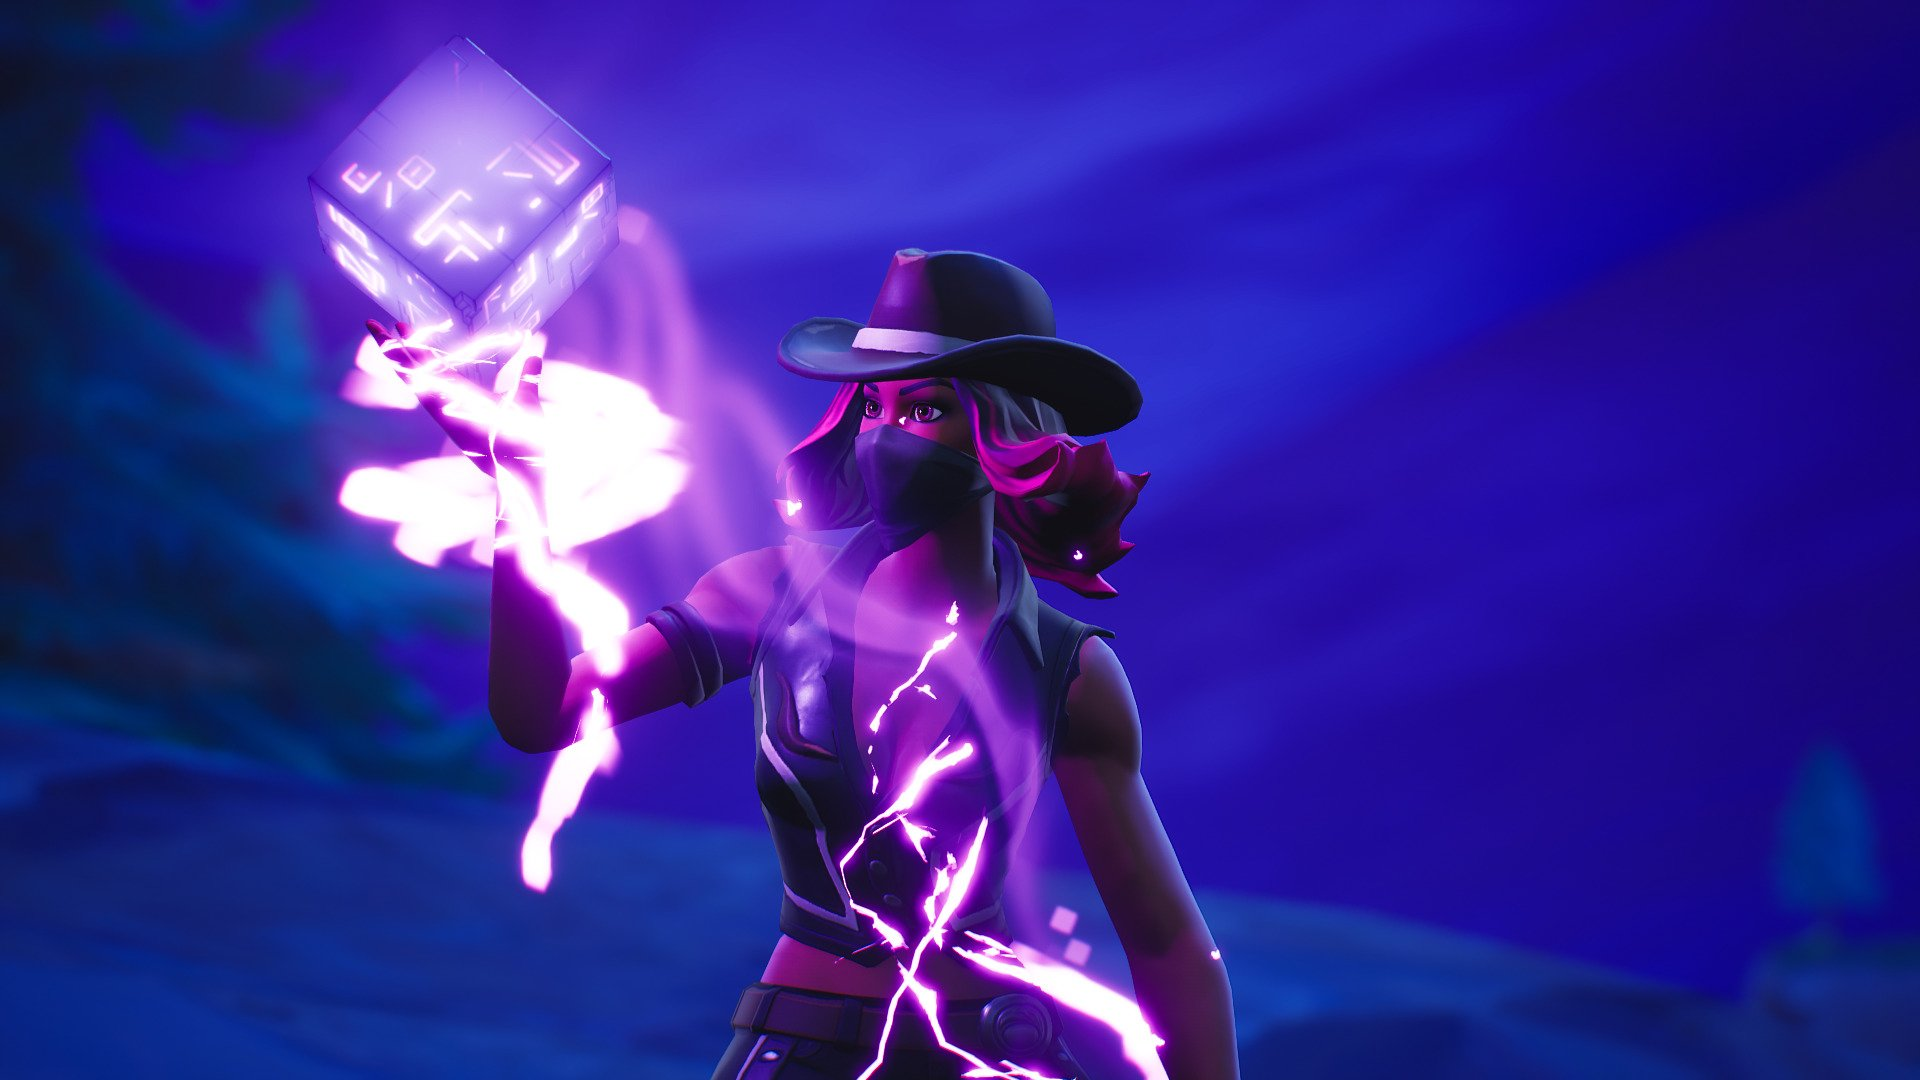 Calamity Fortnite Cube by Davidbellver 4291 Wallpapers and 1920x1080